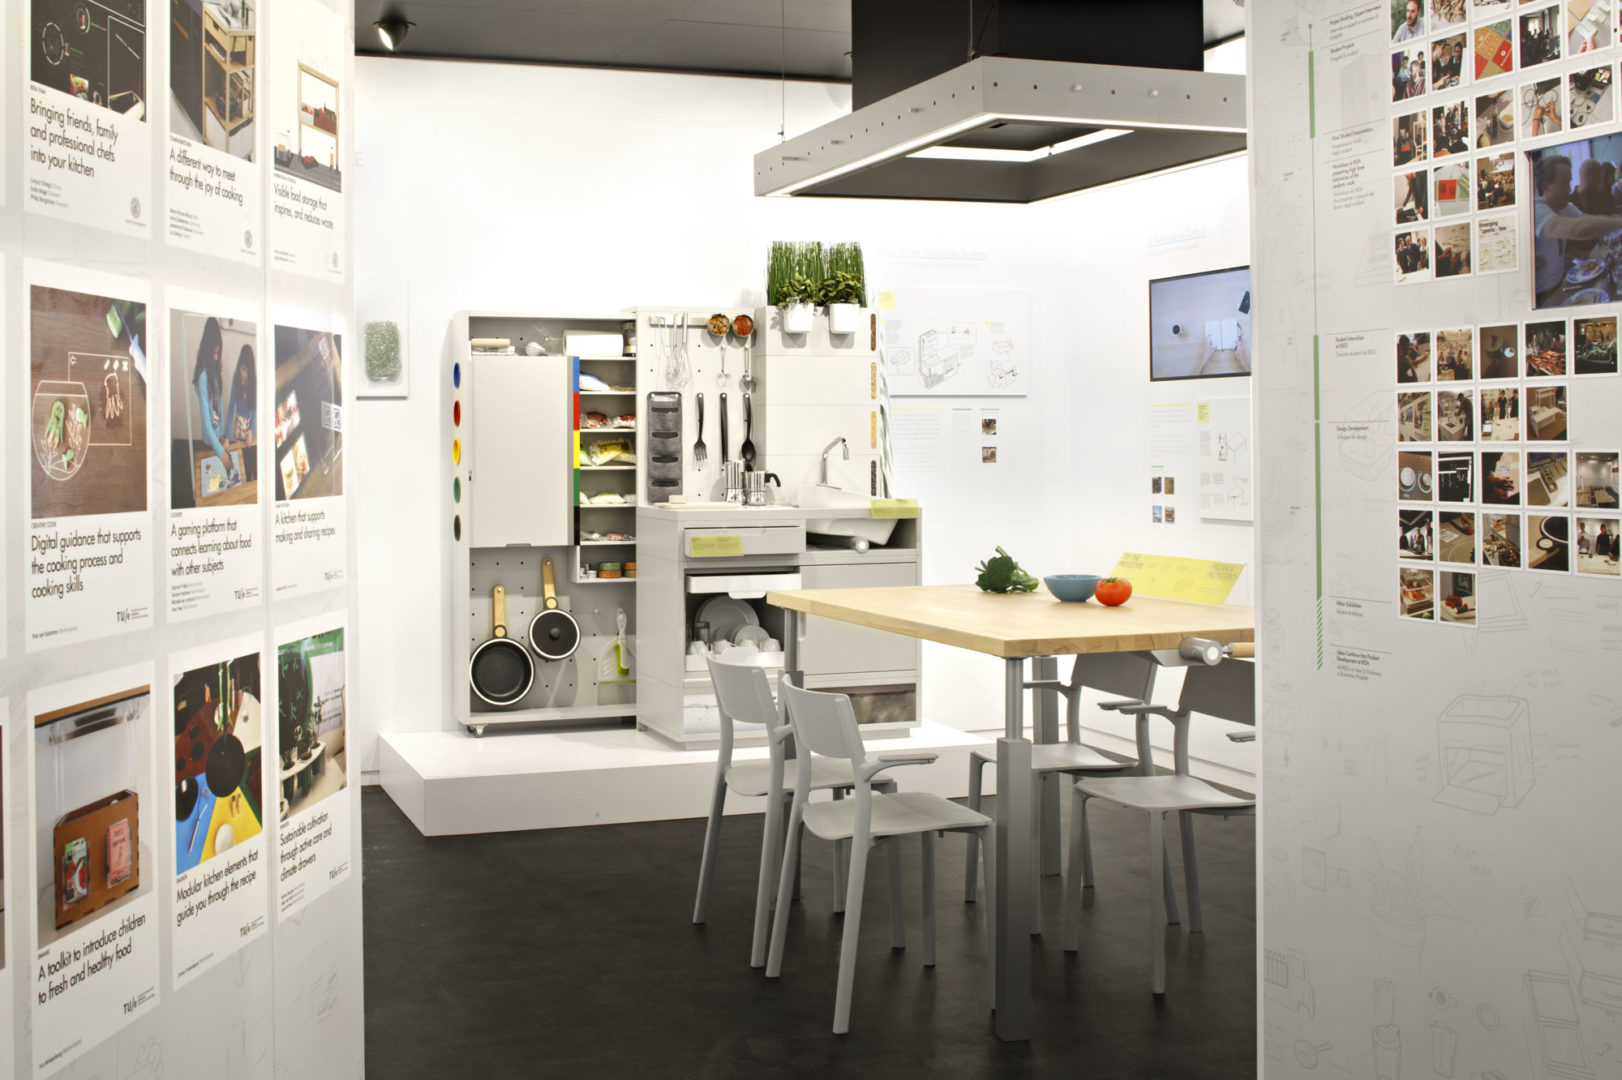 ikea imagine une cuisine ultra connect e pour 2025 food geek love. Black Bedroom Furniture Sets. Home Design Ideas